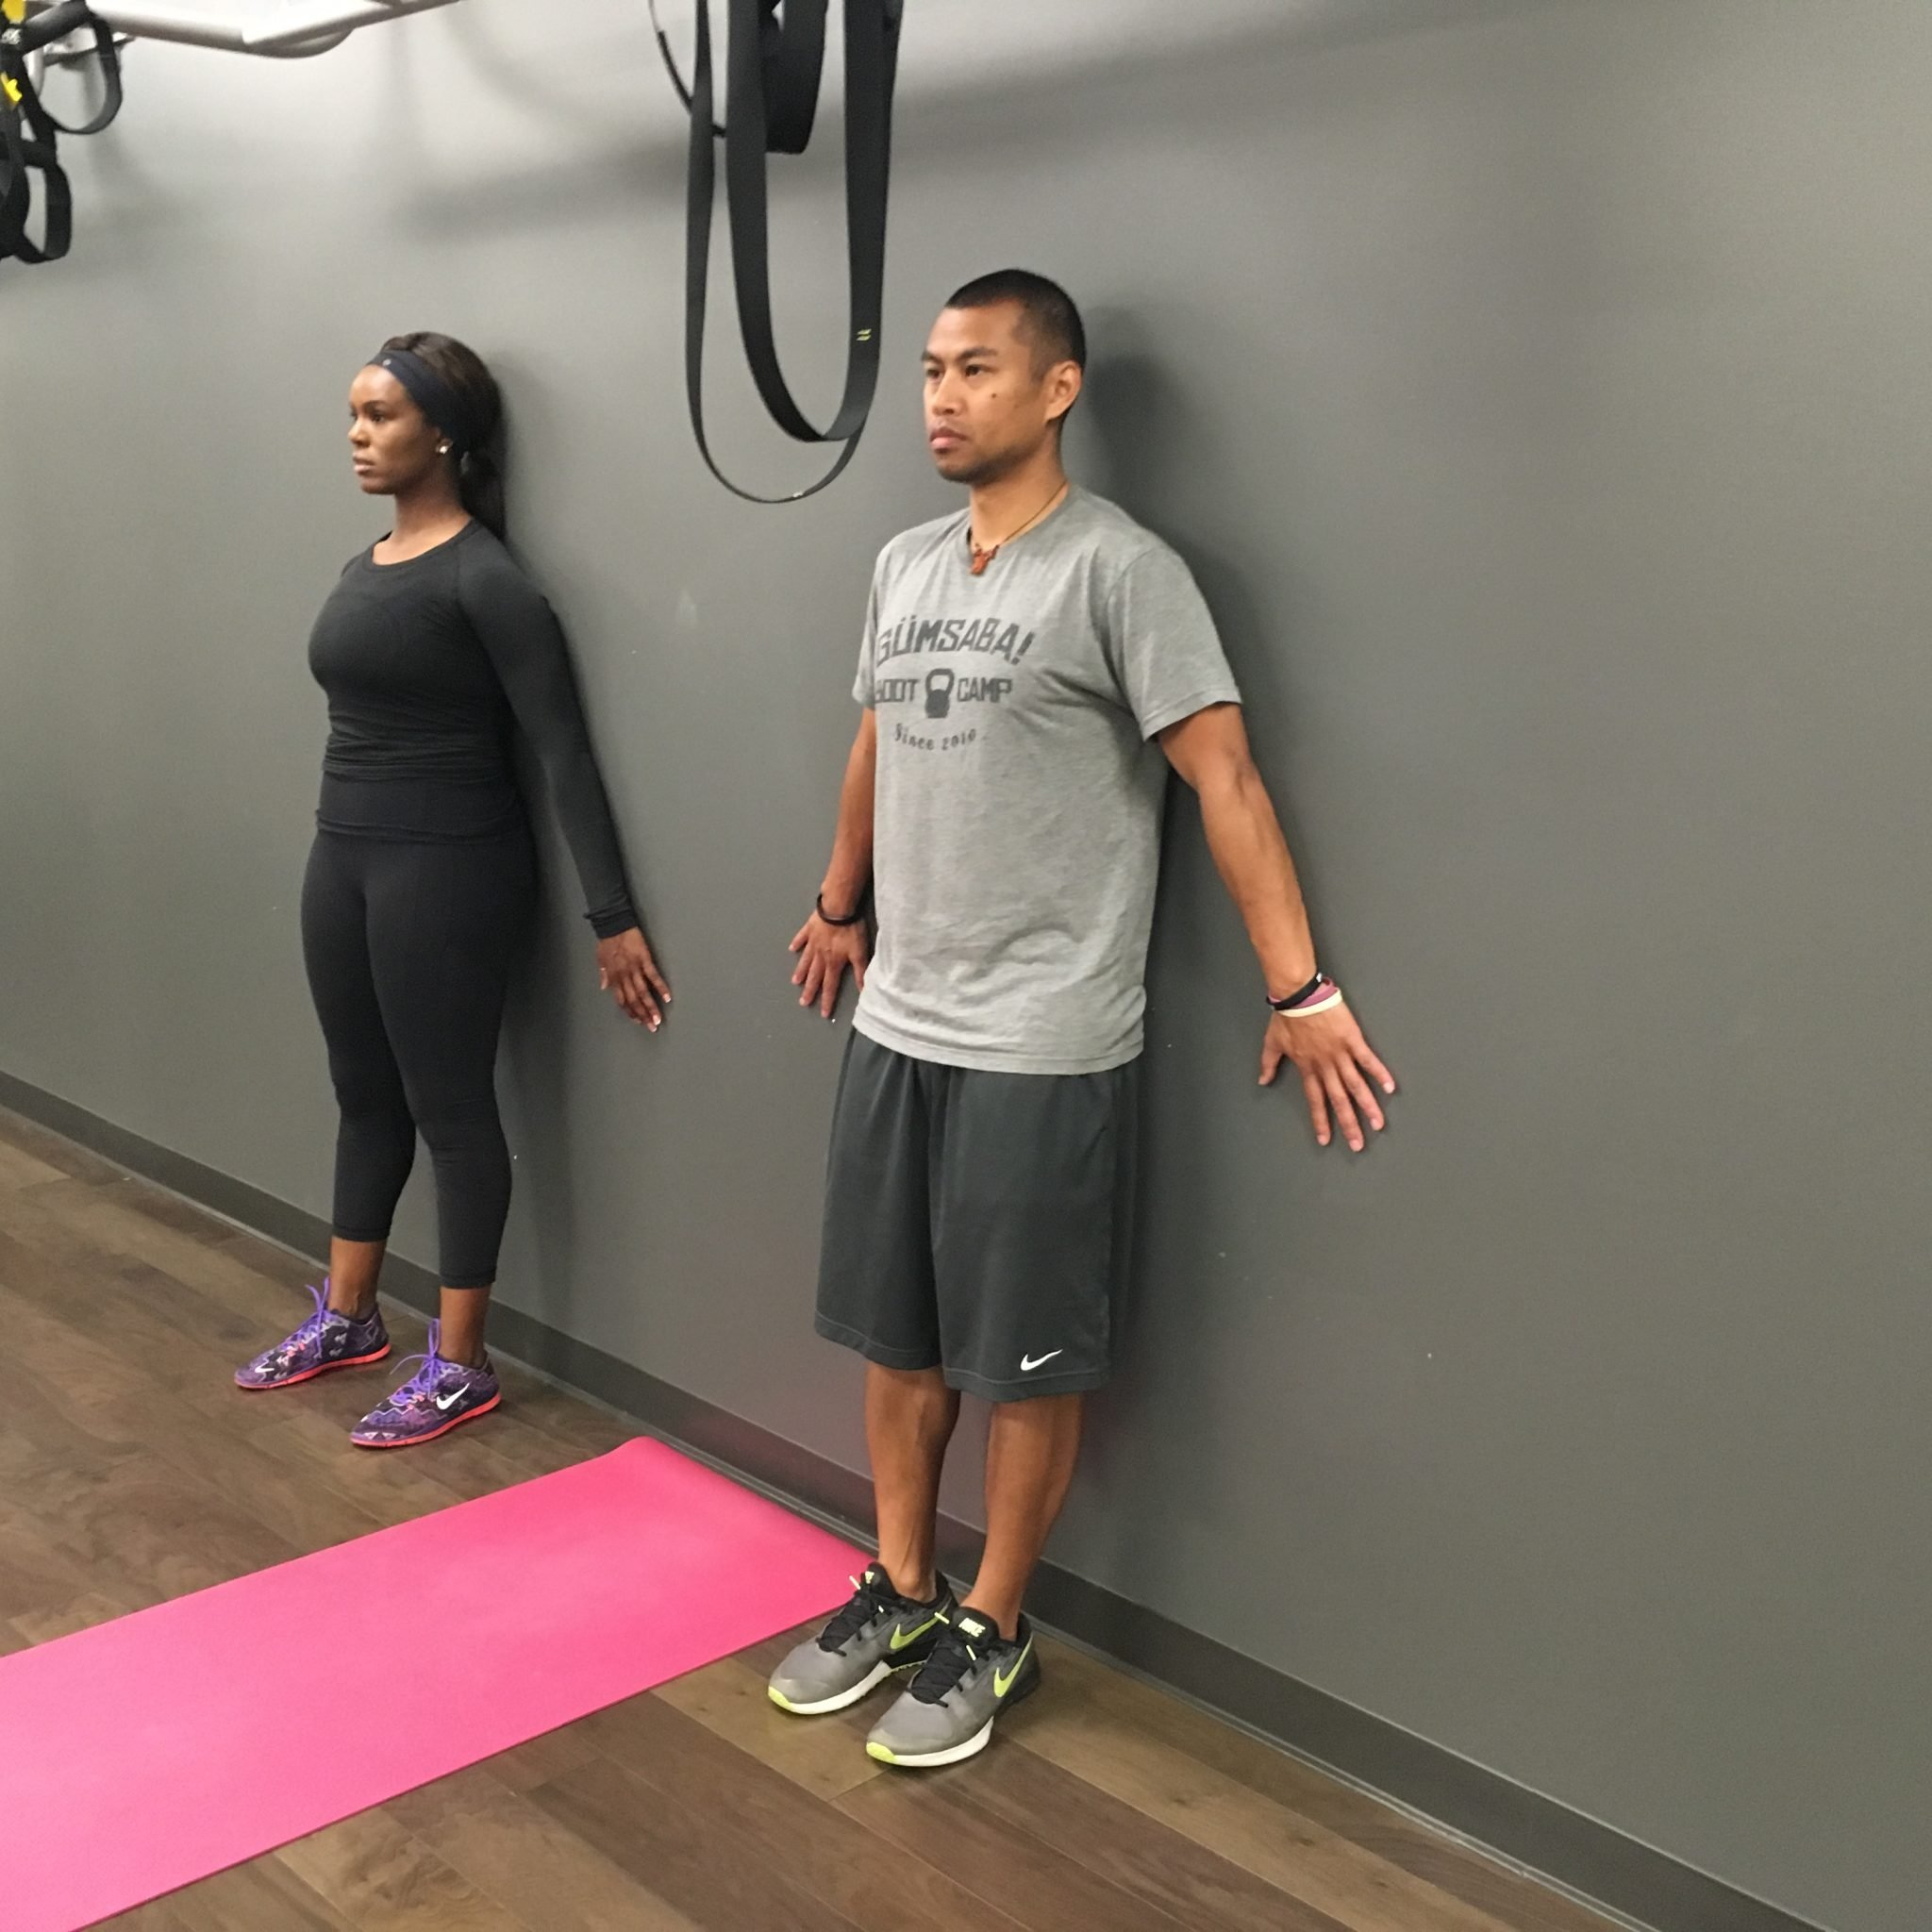 Technical Tuesday – Core activation